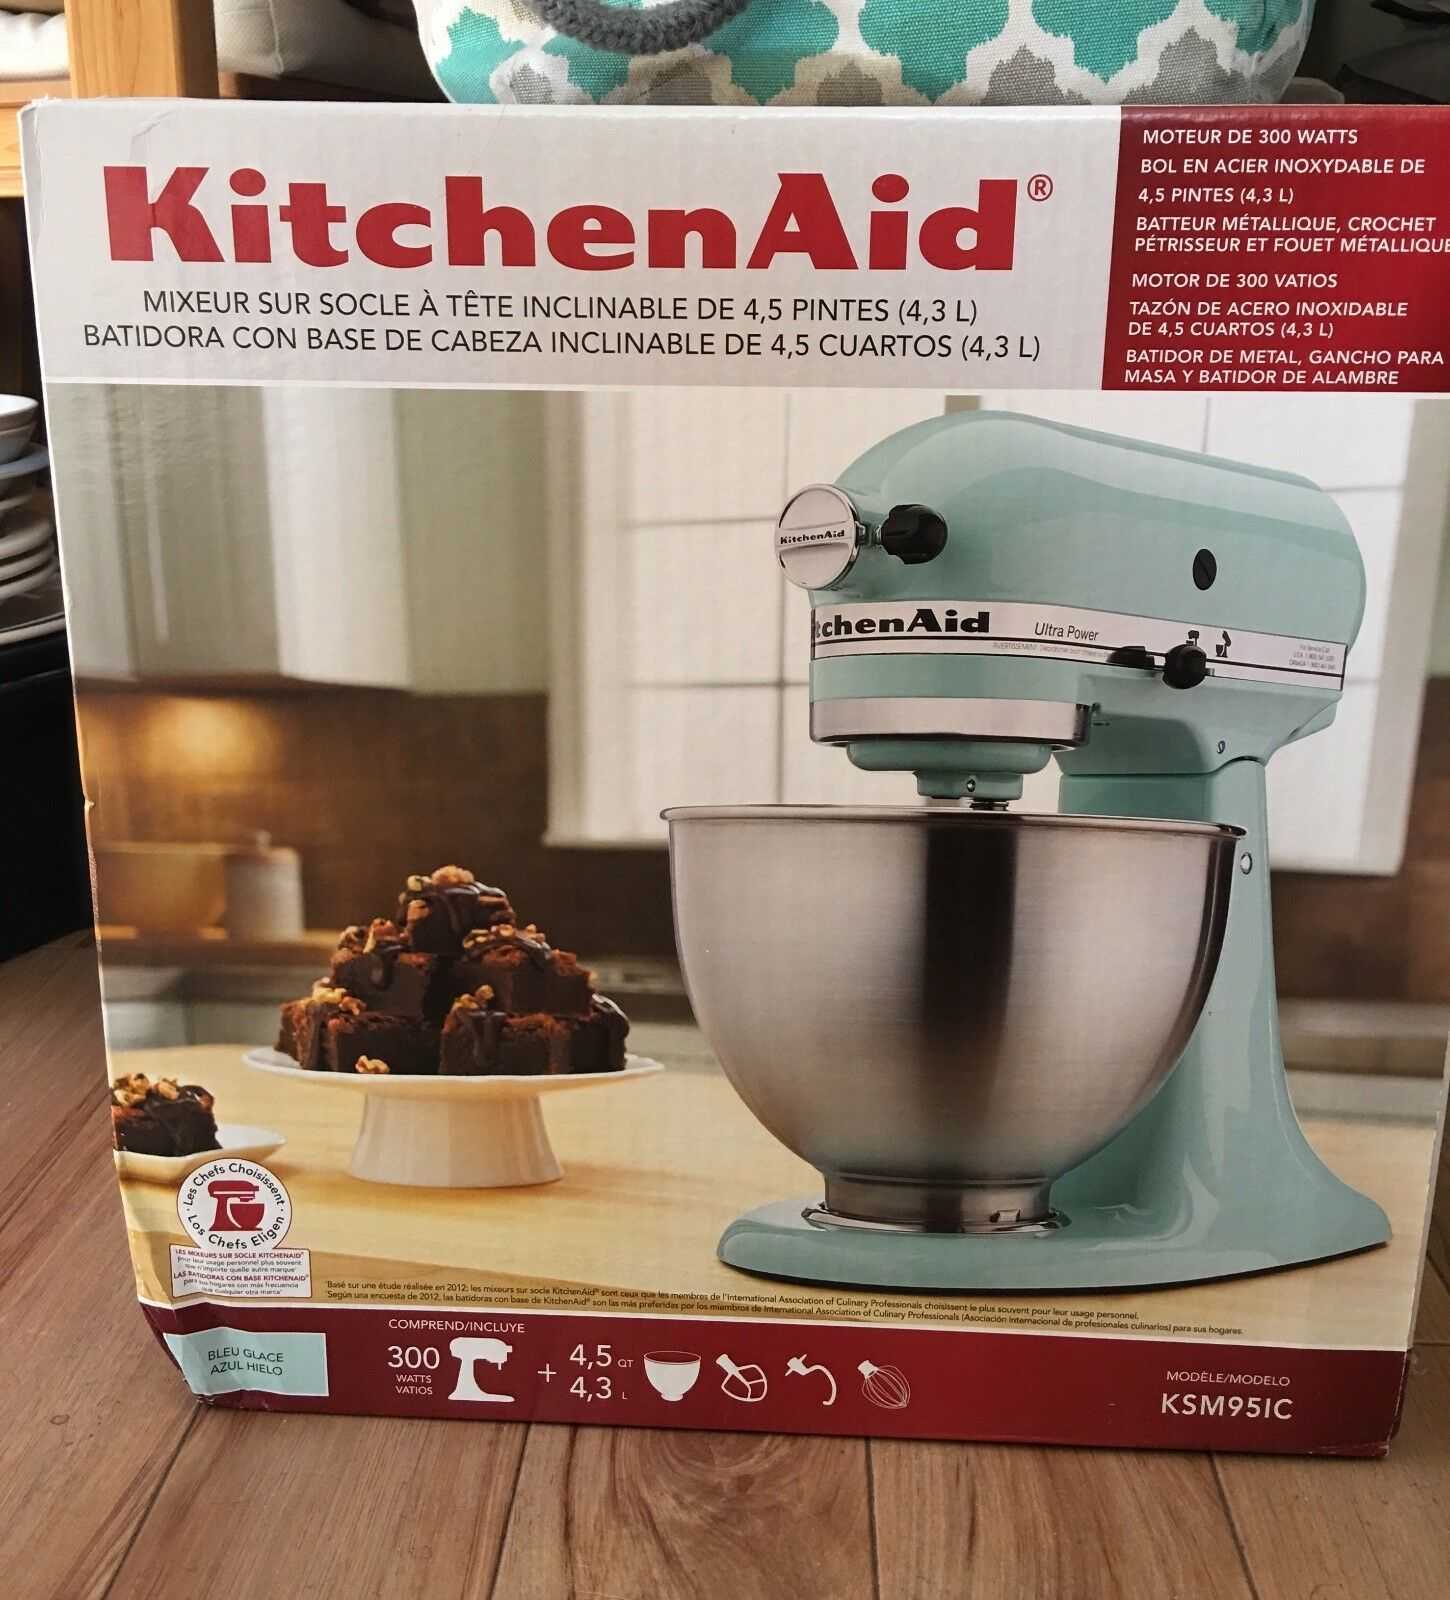 New KitchenAid 4.5 QT Tilt-head Stand Mixer Ice bluee, bluee Glaze 300 Watts